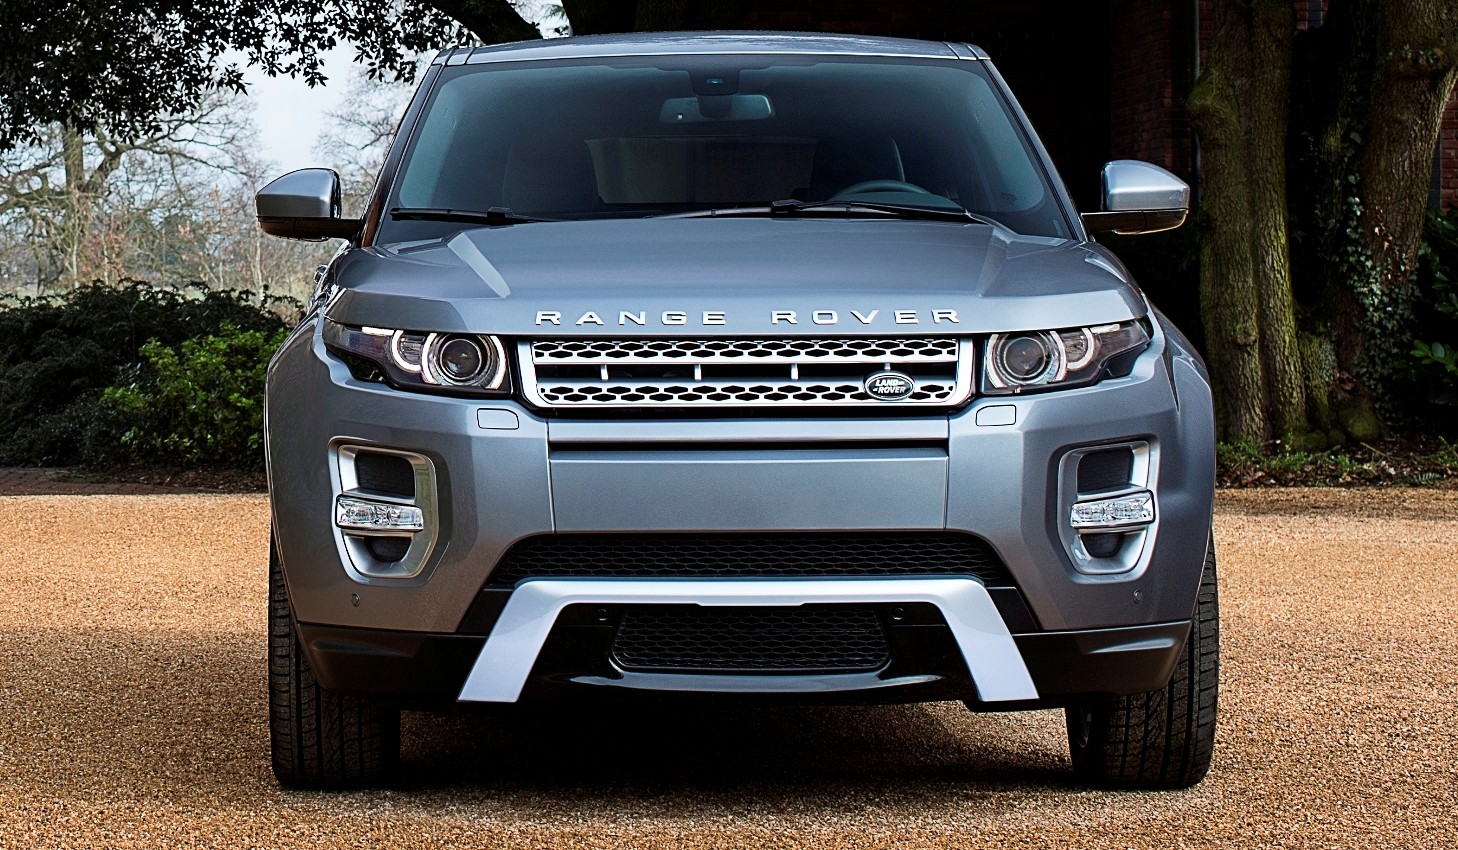 2015 Range Rover Evoque Gains 9-Speed Auto, Refreshed Info Tech and Boosted Engine HP 3